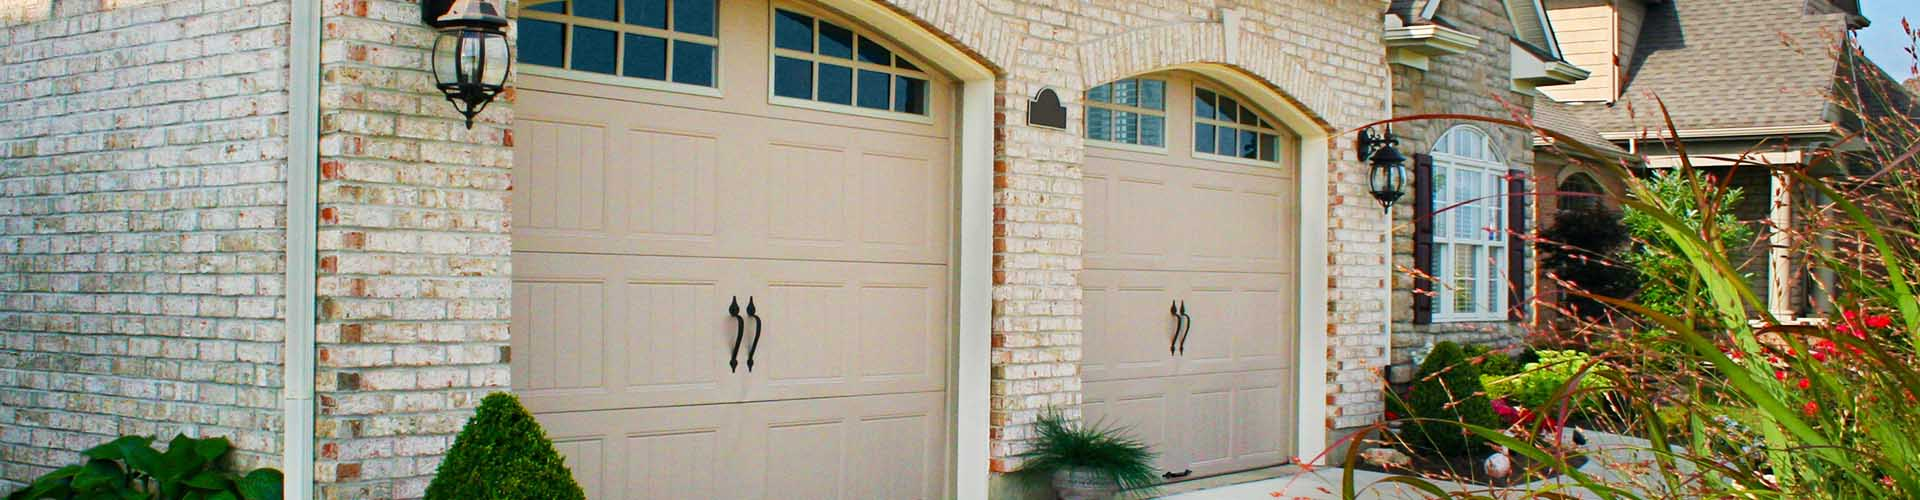 Garage Door Repair U0026 Installation, Overhead Doors, Roll Up Doors   OKC